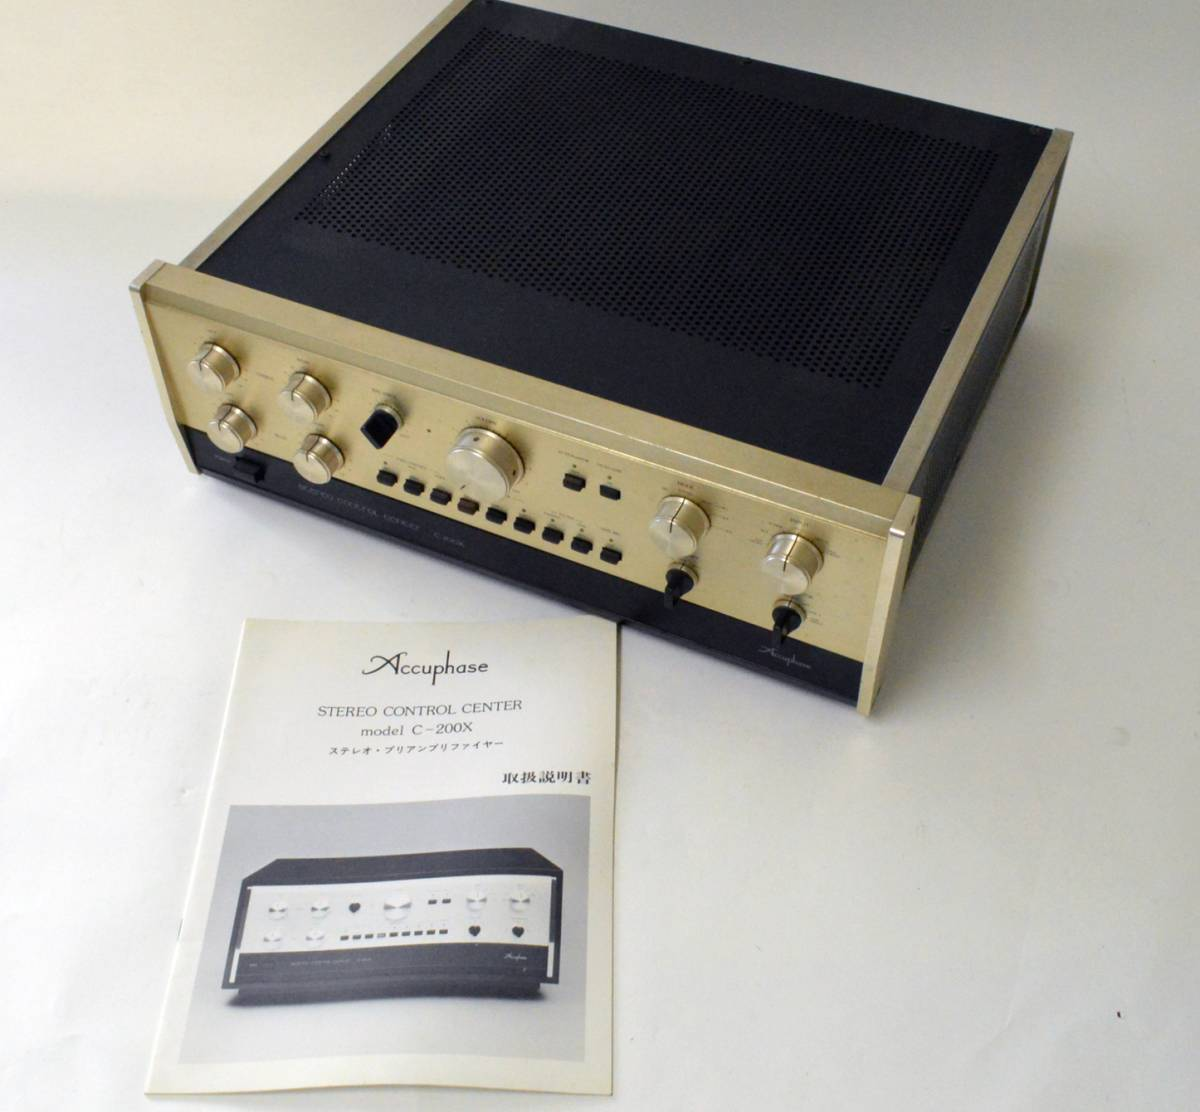 YS990 ジャンク品 アキュフェーズ プリアンプ C-200X☆取説付 Accuphase コントロール AMPLIFIER☆超貴重品